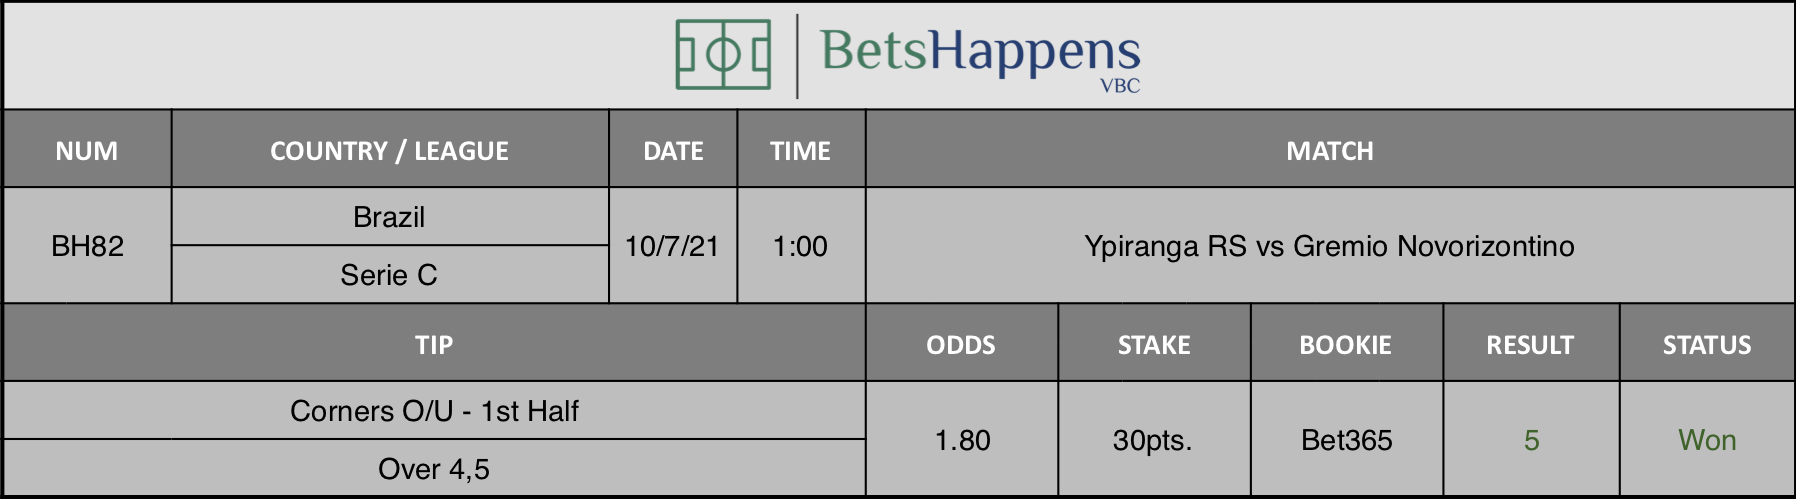 Results of our advice for the Ypiranga RS vs Gremio Novorizontino match in which Corners O/U - 1st Half  Over 4,5 is recommended.